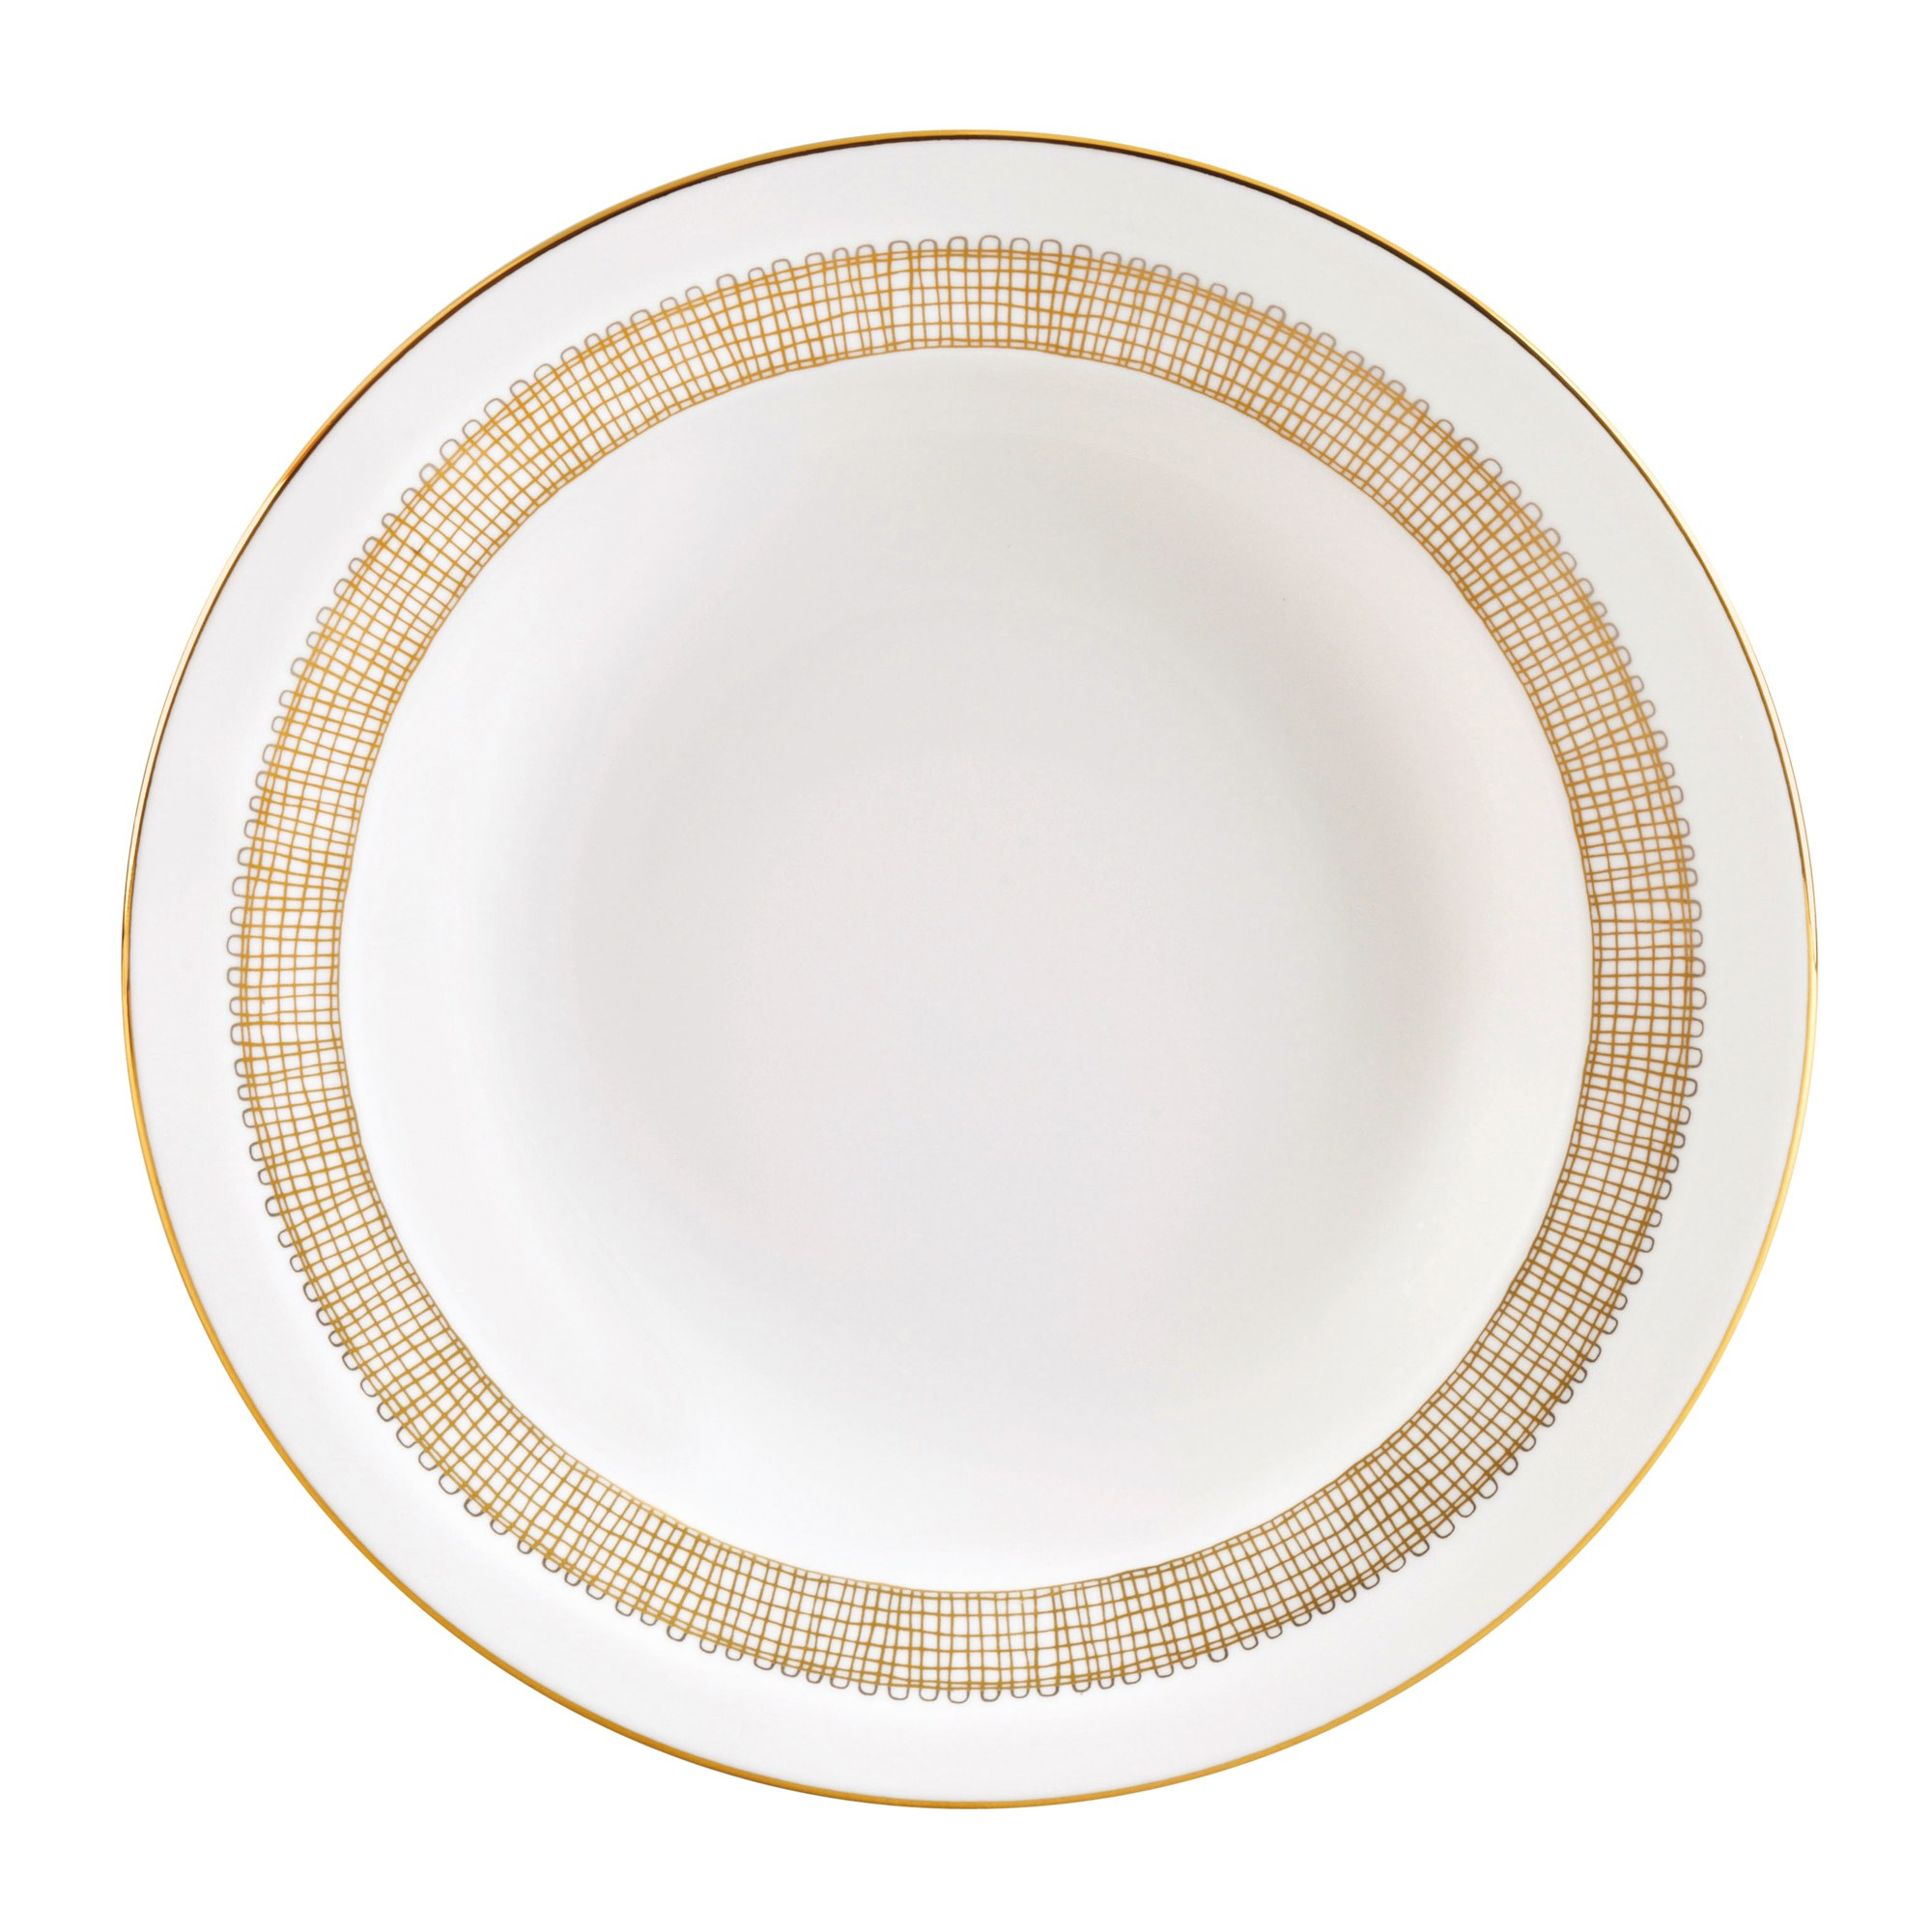 Vera Wang Gilded Weave Soup Plate 23cm